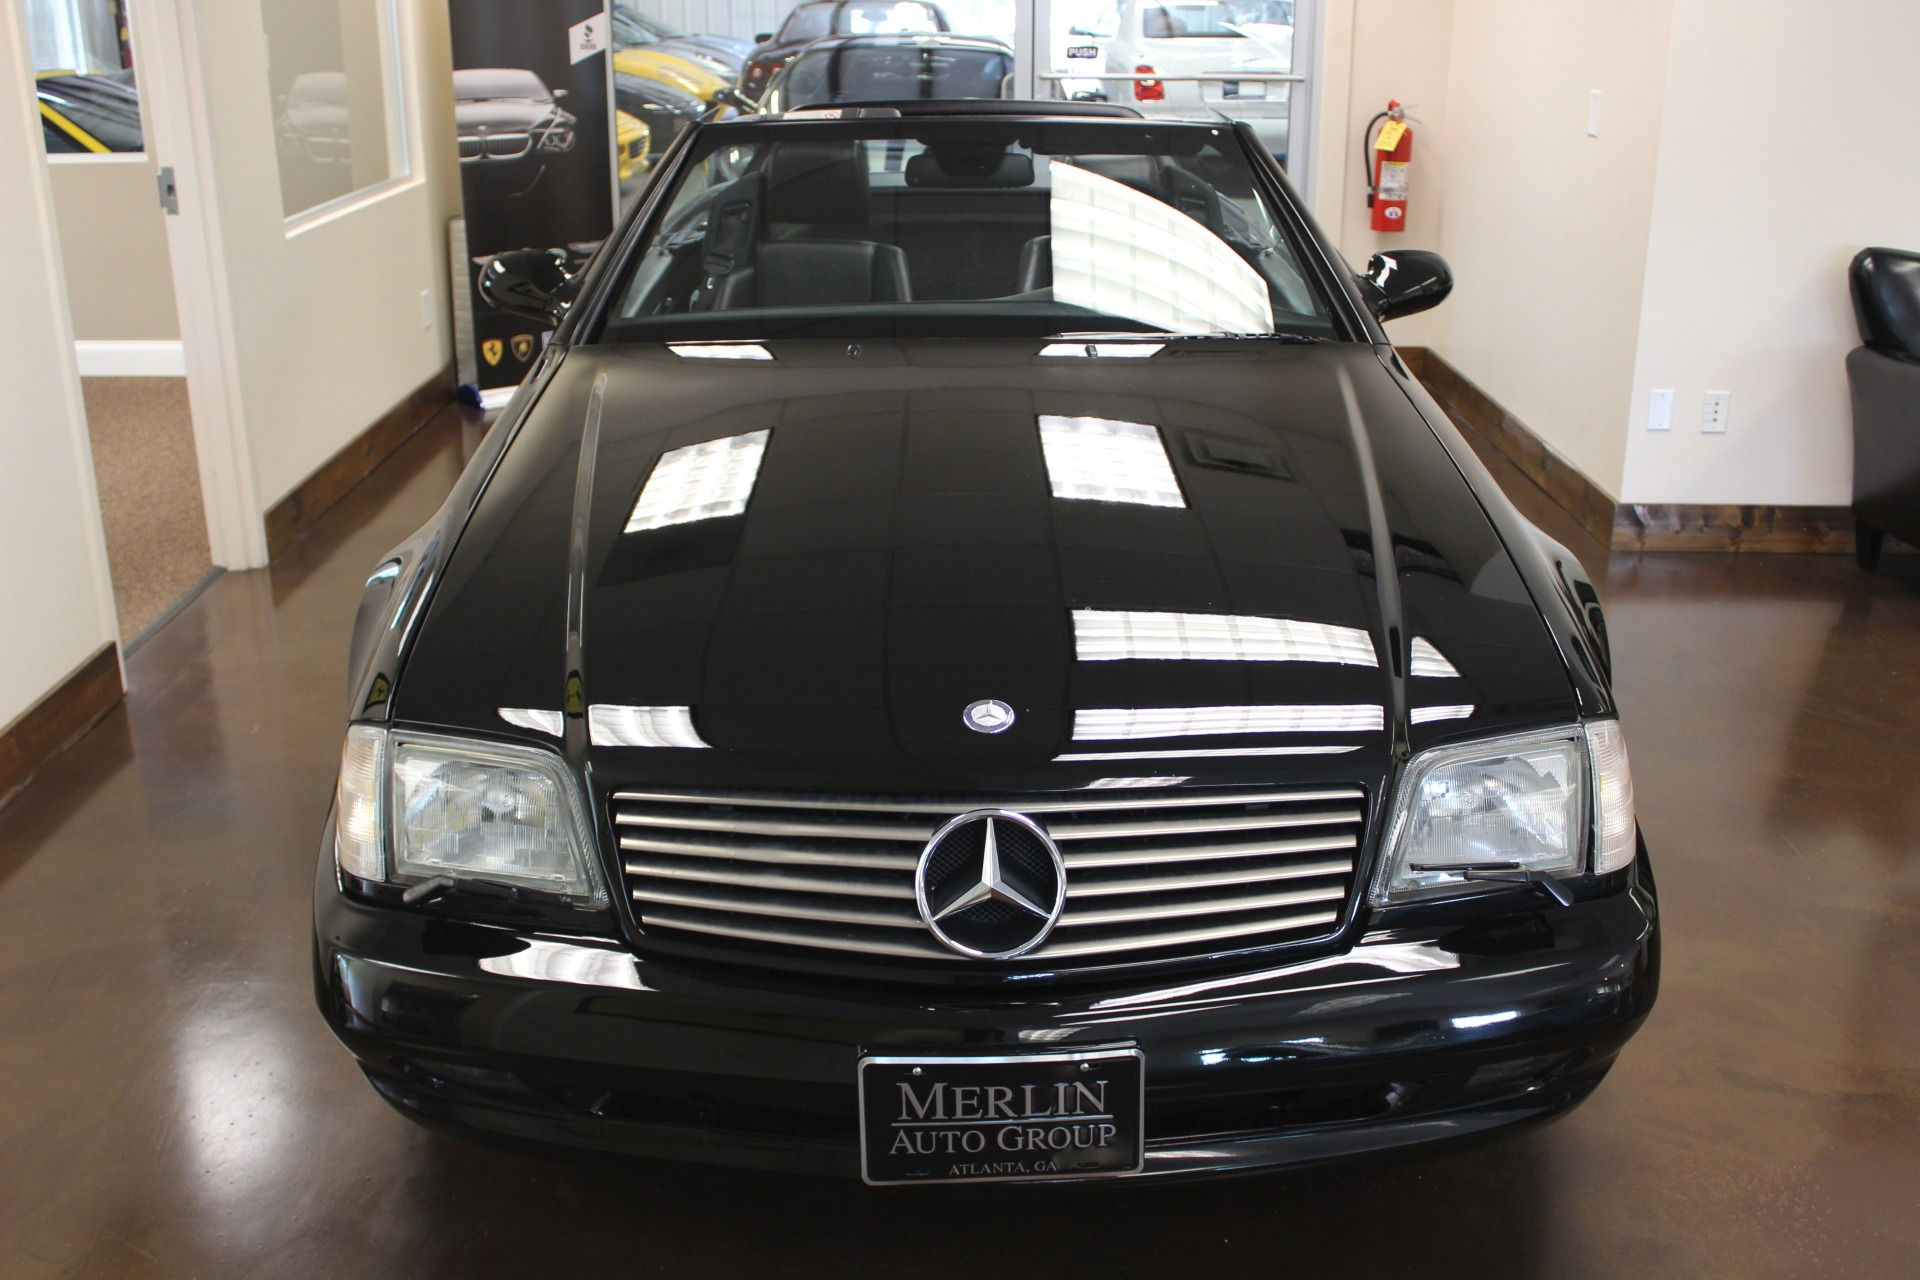 2001 mercedes benz sl class used mercedes benz sl class for sale in atlanta georgia used. Black Bedroom Furniture Sets. Home Design Ideas